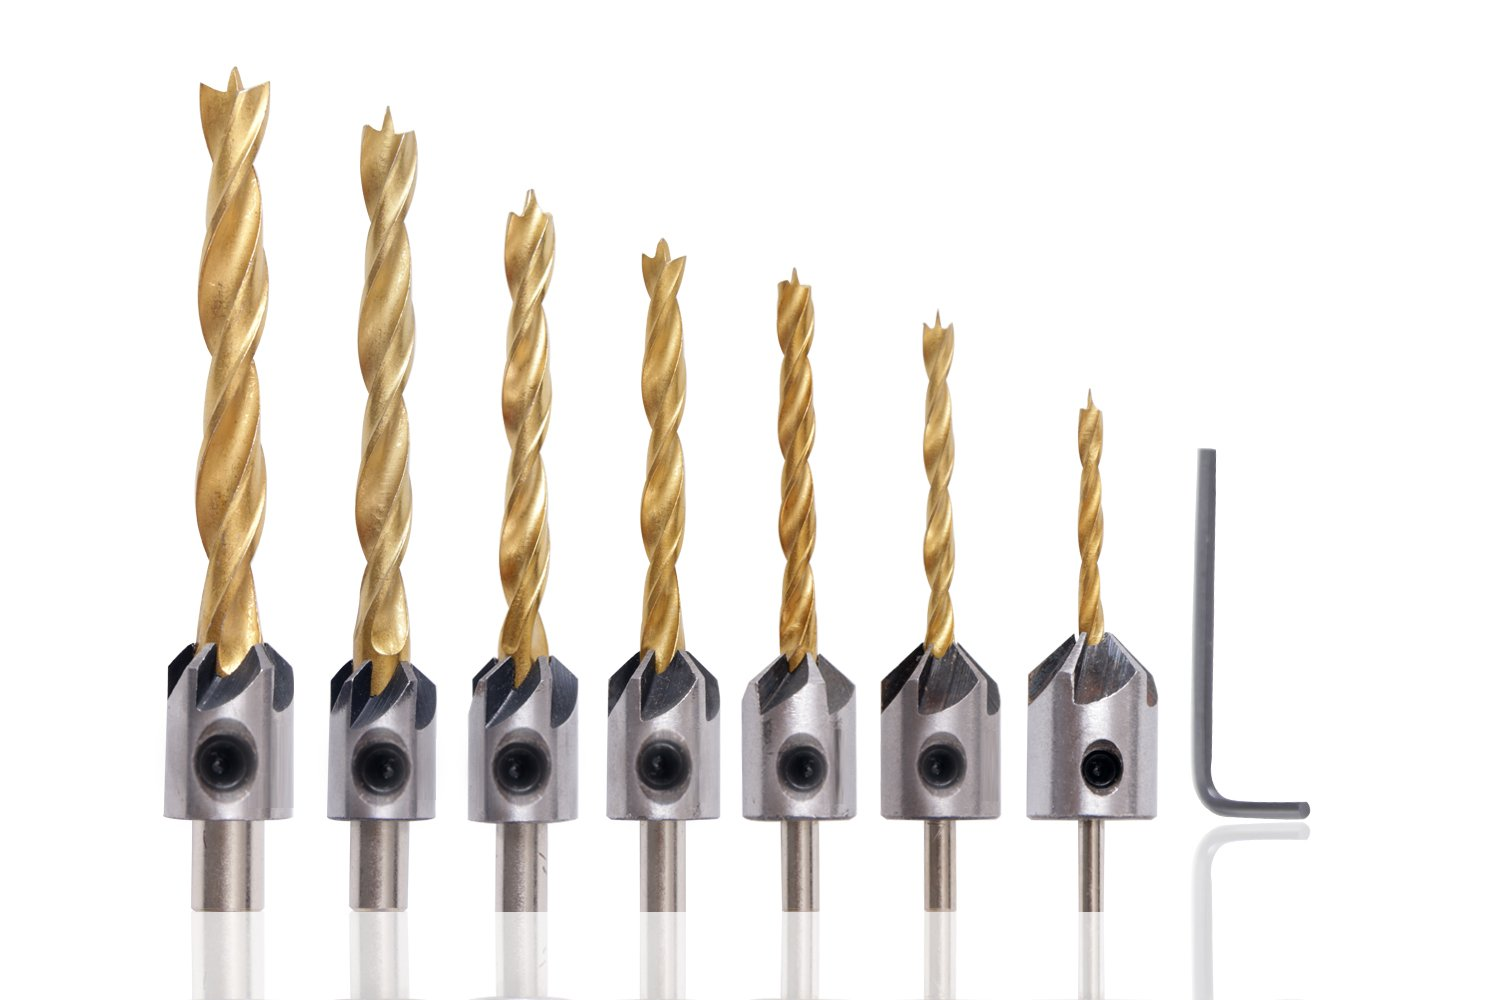 7Pcs 5 Flute 3-10mm Woodworking Countersink Drill Bits Set by SUYIZN Woodworking Chamfer Three-Pointed Titanium Coated High Quality Carbon Steel Drill with One Free Hex Key